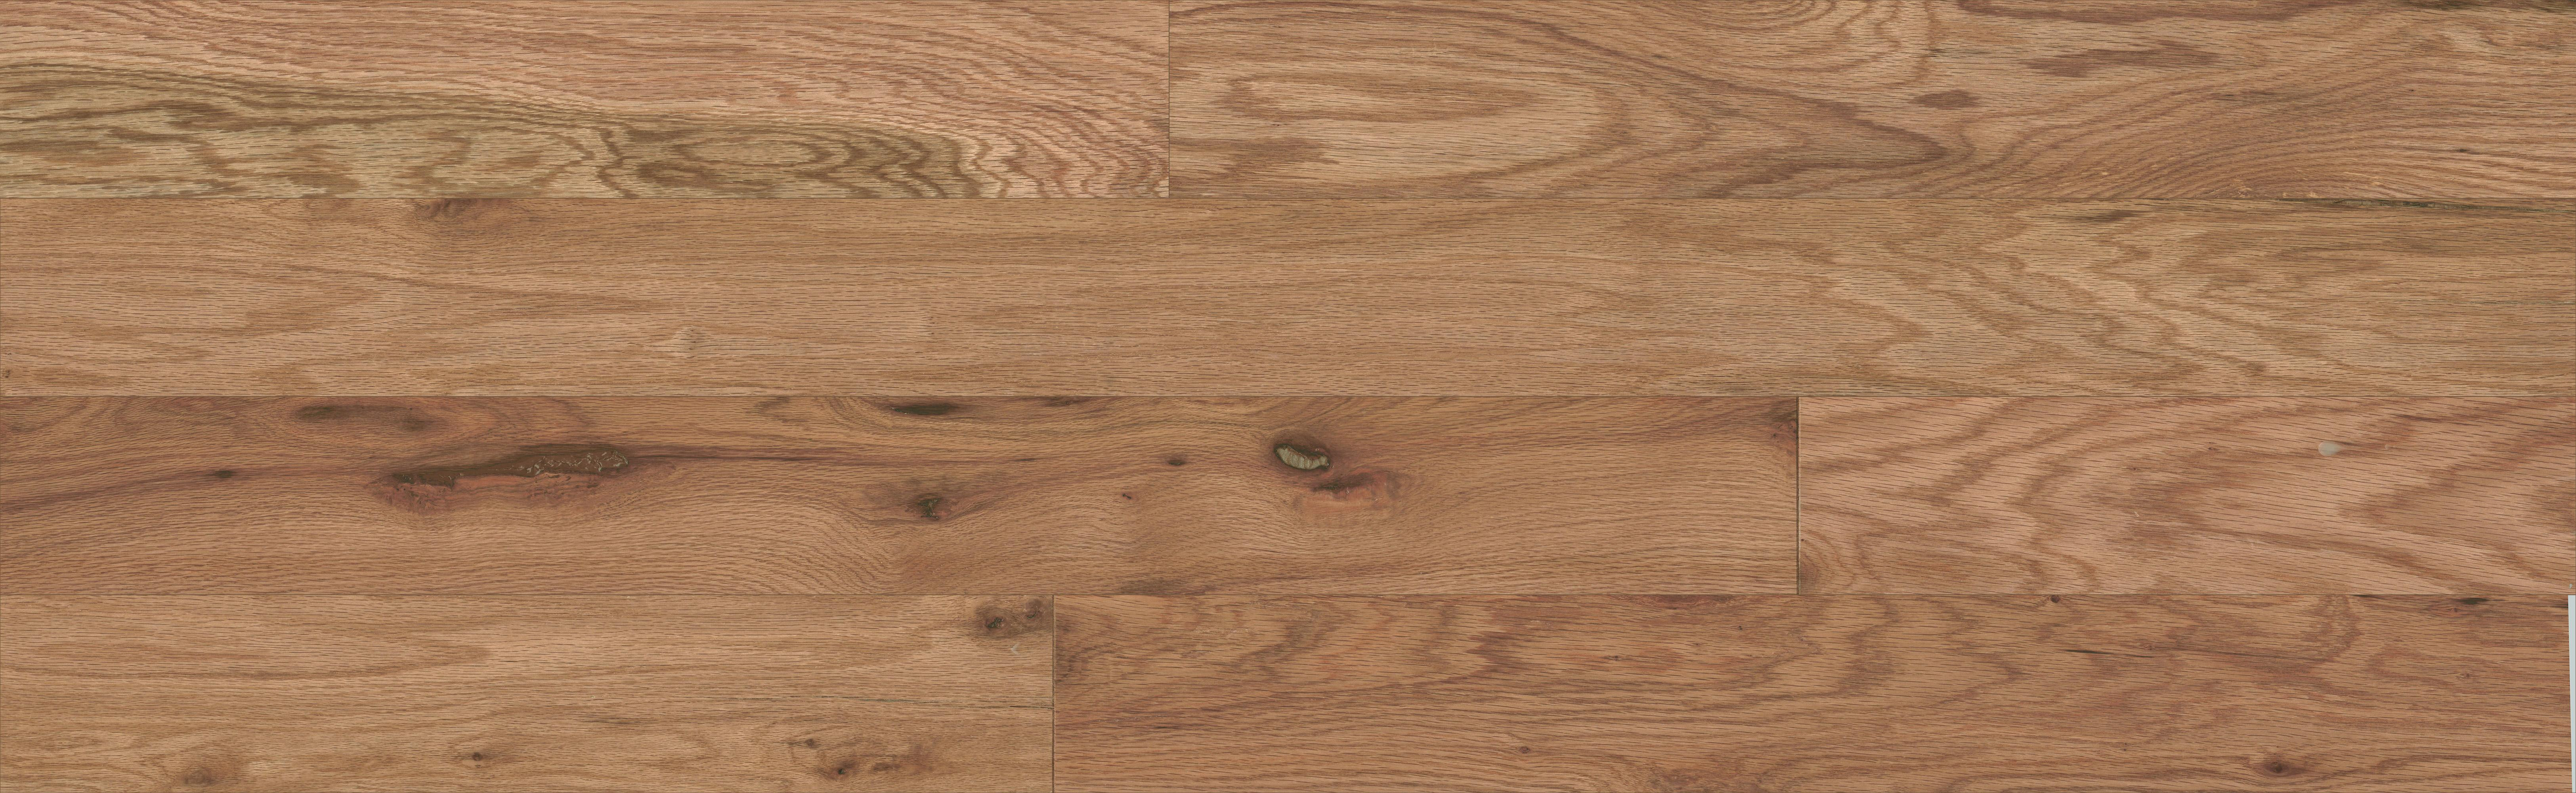 5 red oak hardwood flooring of mullican ridgecrest red oak natural 1 2 thick 5 wide engineered in mullican ridgecrest red oak natural 1 2 thick 5 wide engineered hardwood flooring